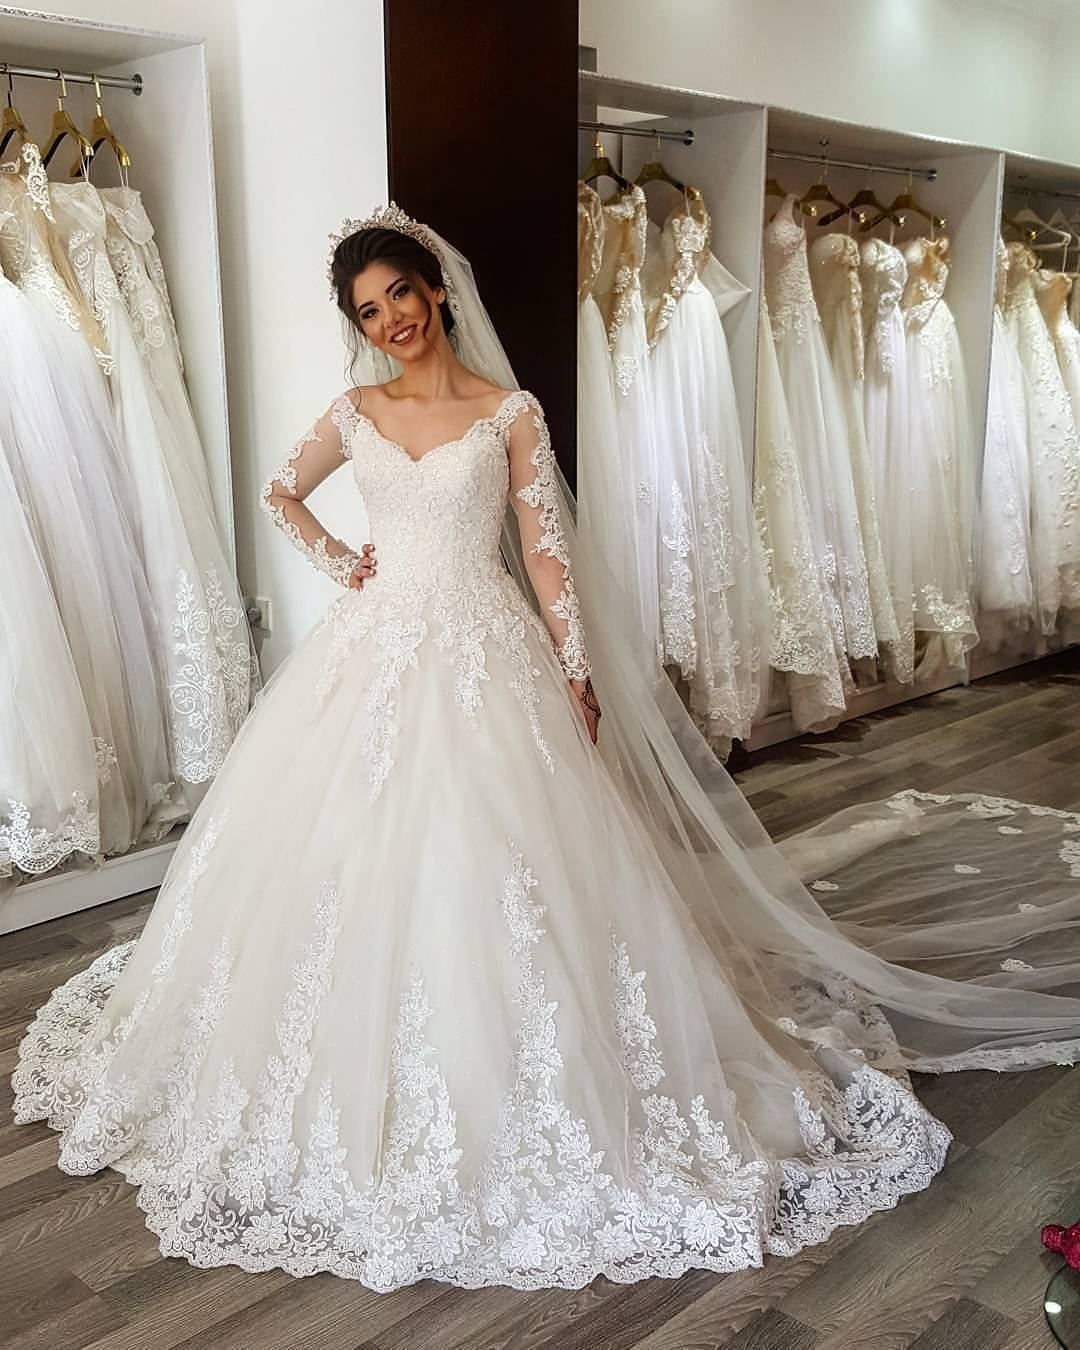 Wedding dress with long sleeves  Charming Wedding DressBall Gown Wedding DressesFull Sleeve Wedding